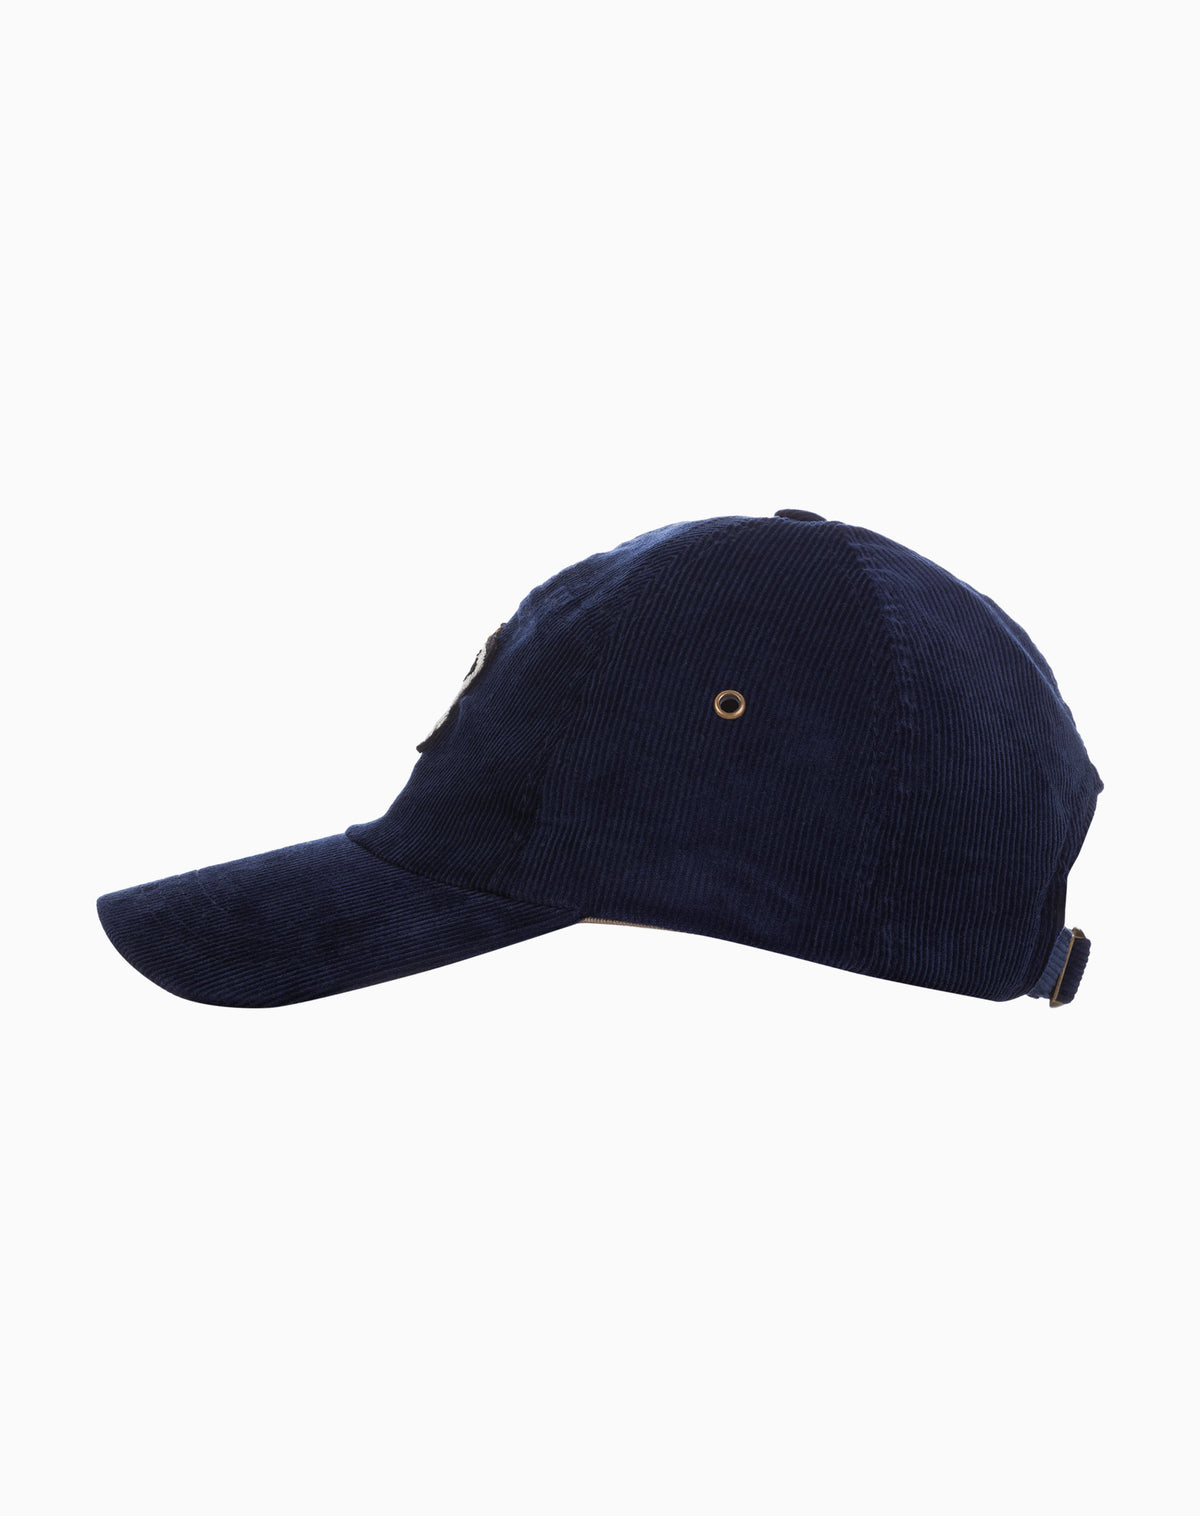 7-Panel with Pelican in Navy